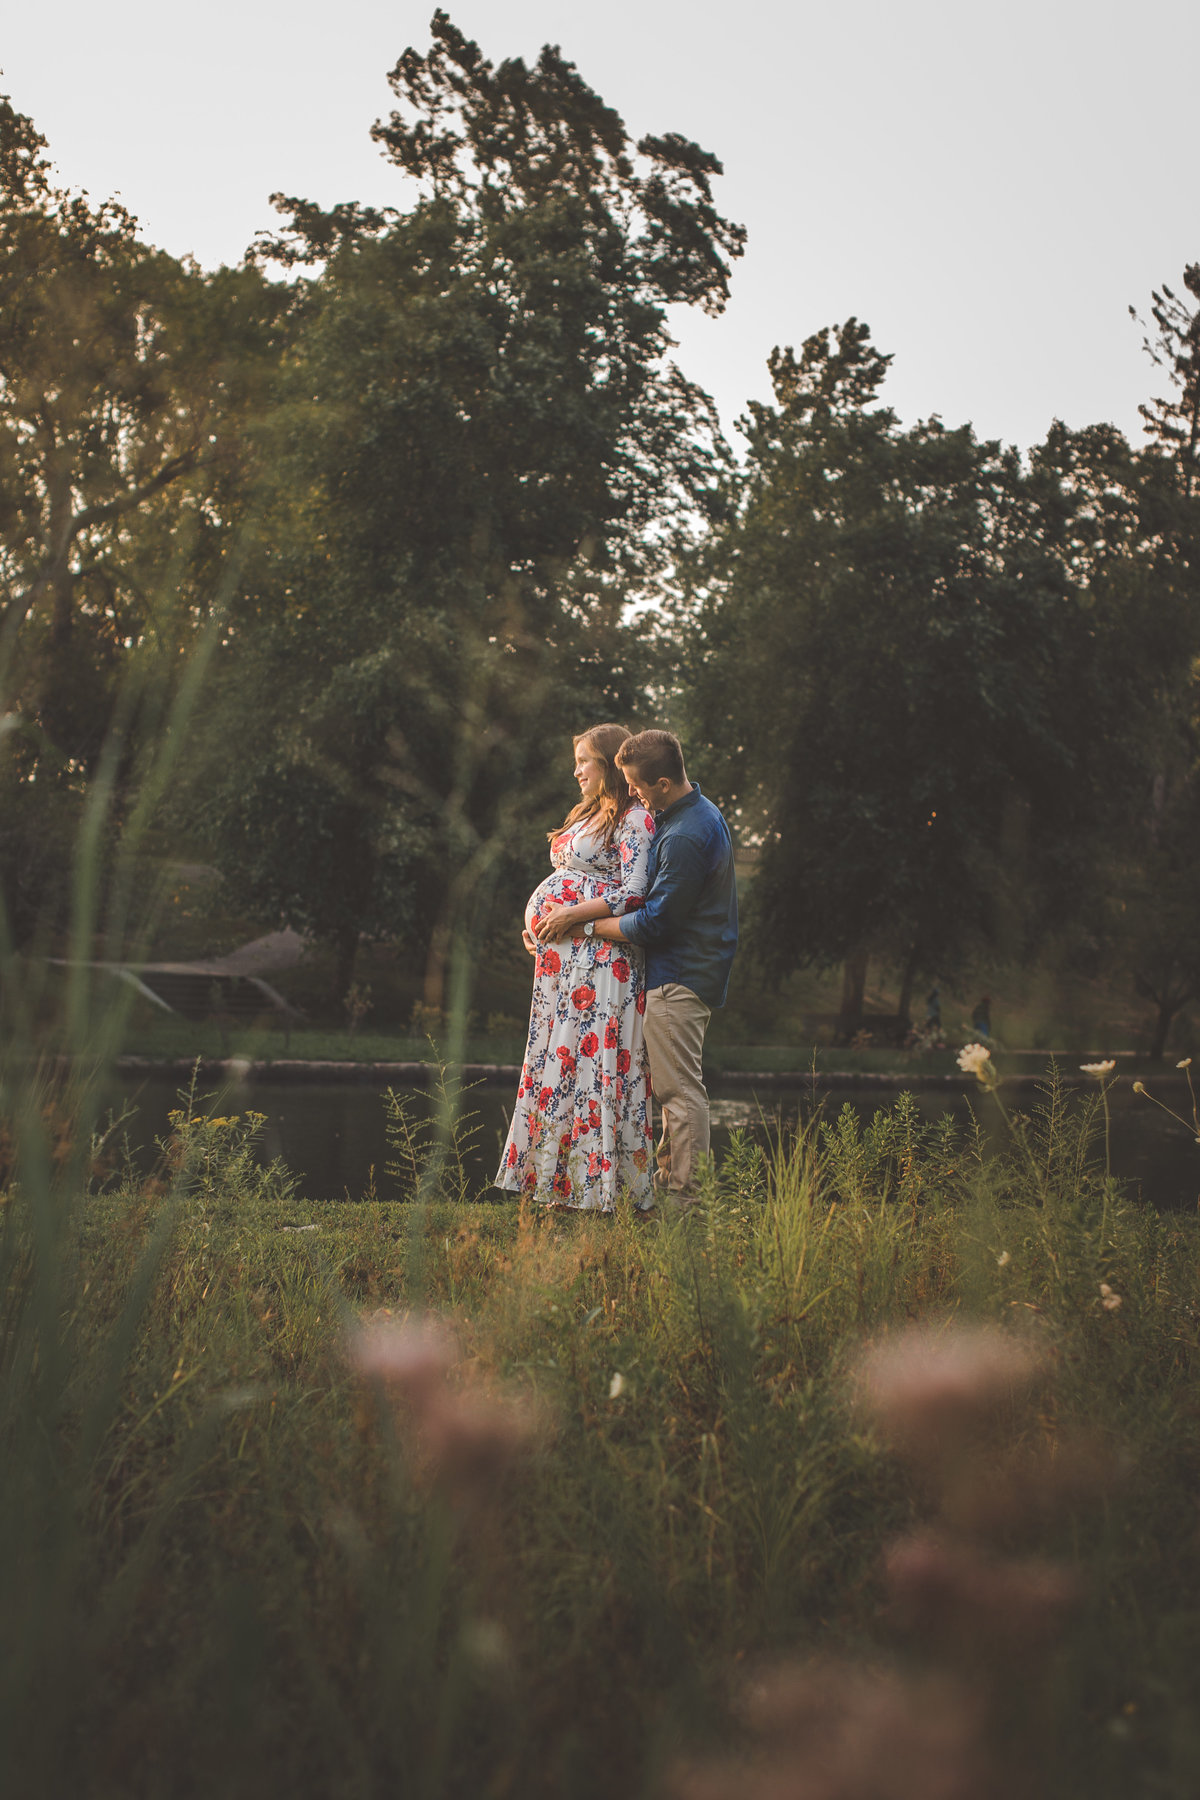 Providence_Rhode_Island_Roger_Williams_Park_maternity_family_session_About_Time_Photography_photo_13